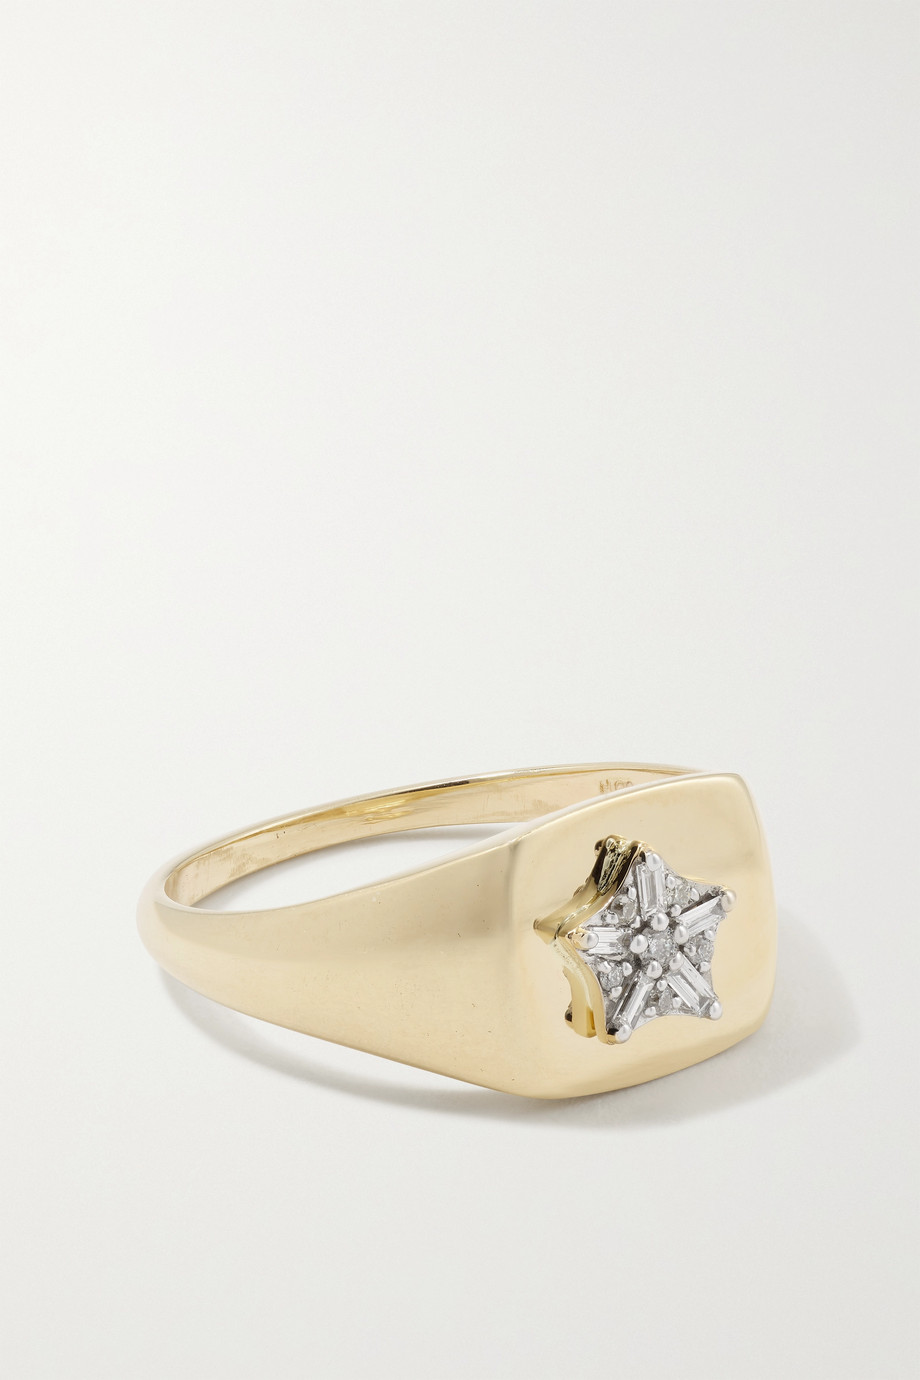 STONE AND STRAND Starbright 10-karat gold diamond ring